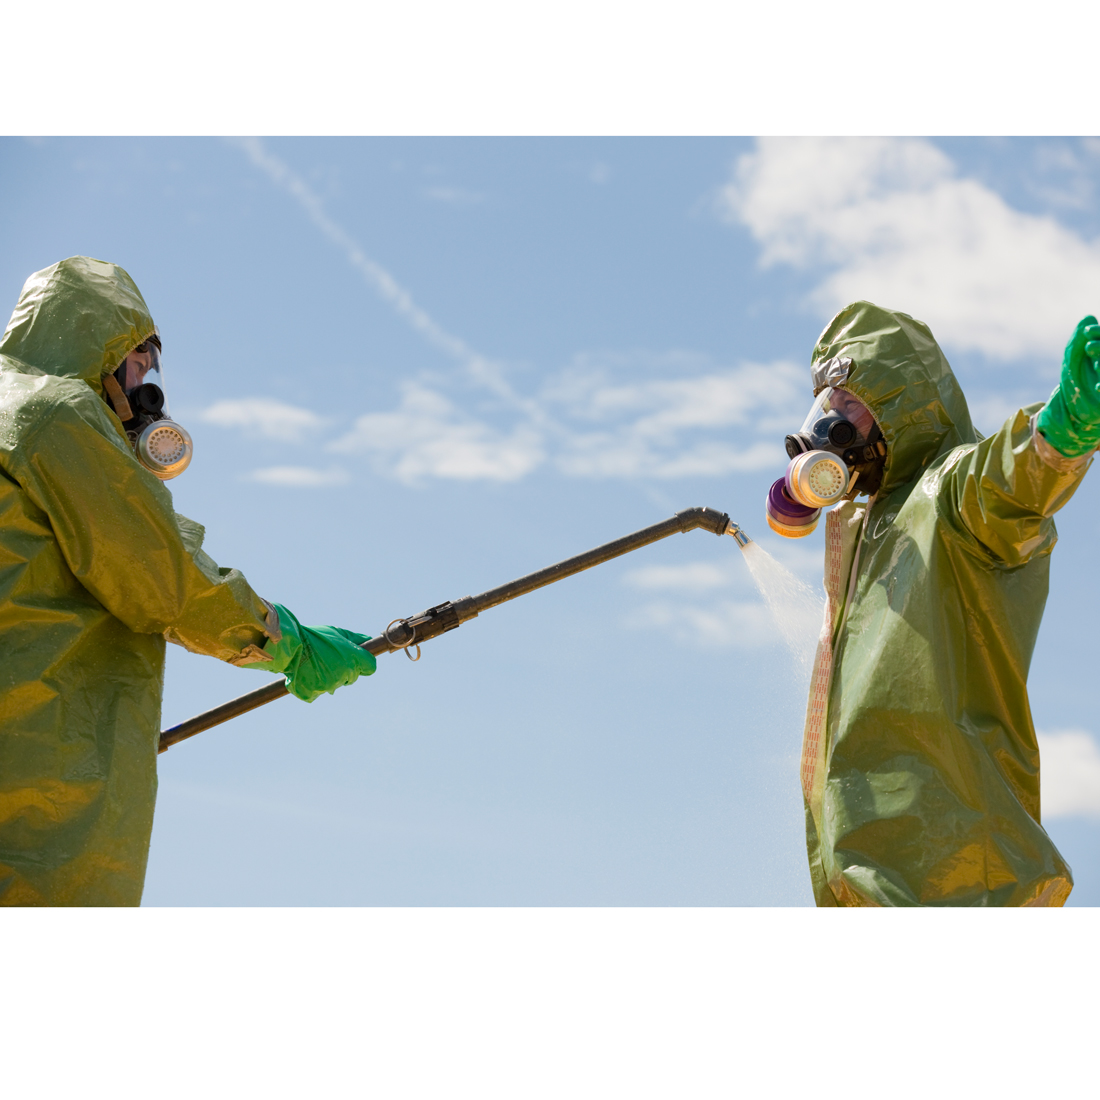 Decontamination wand in use.